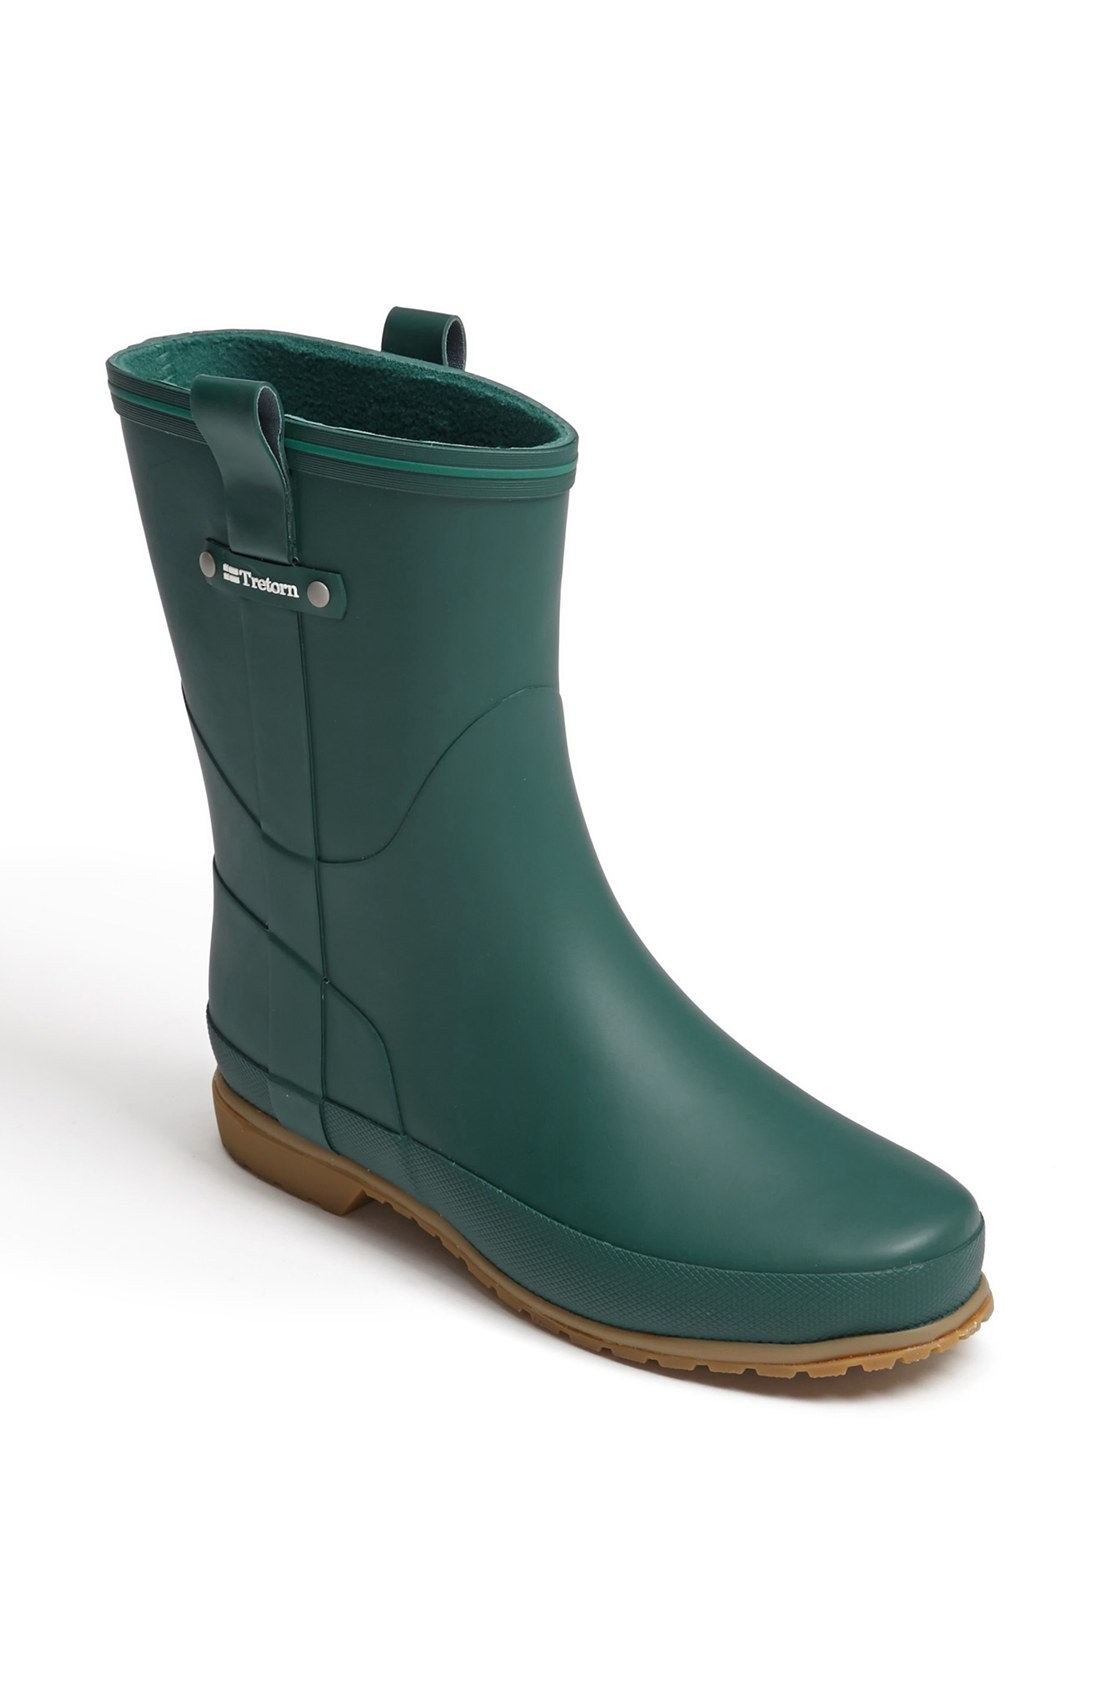 jimmy choo rain boot | eBay